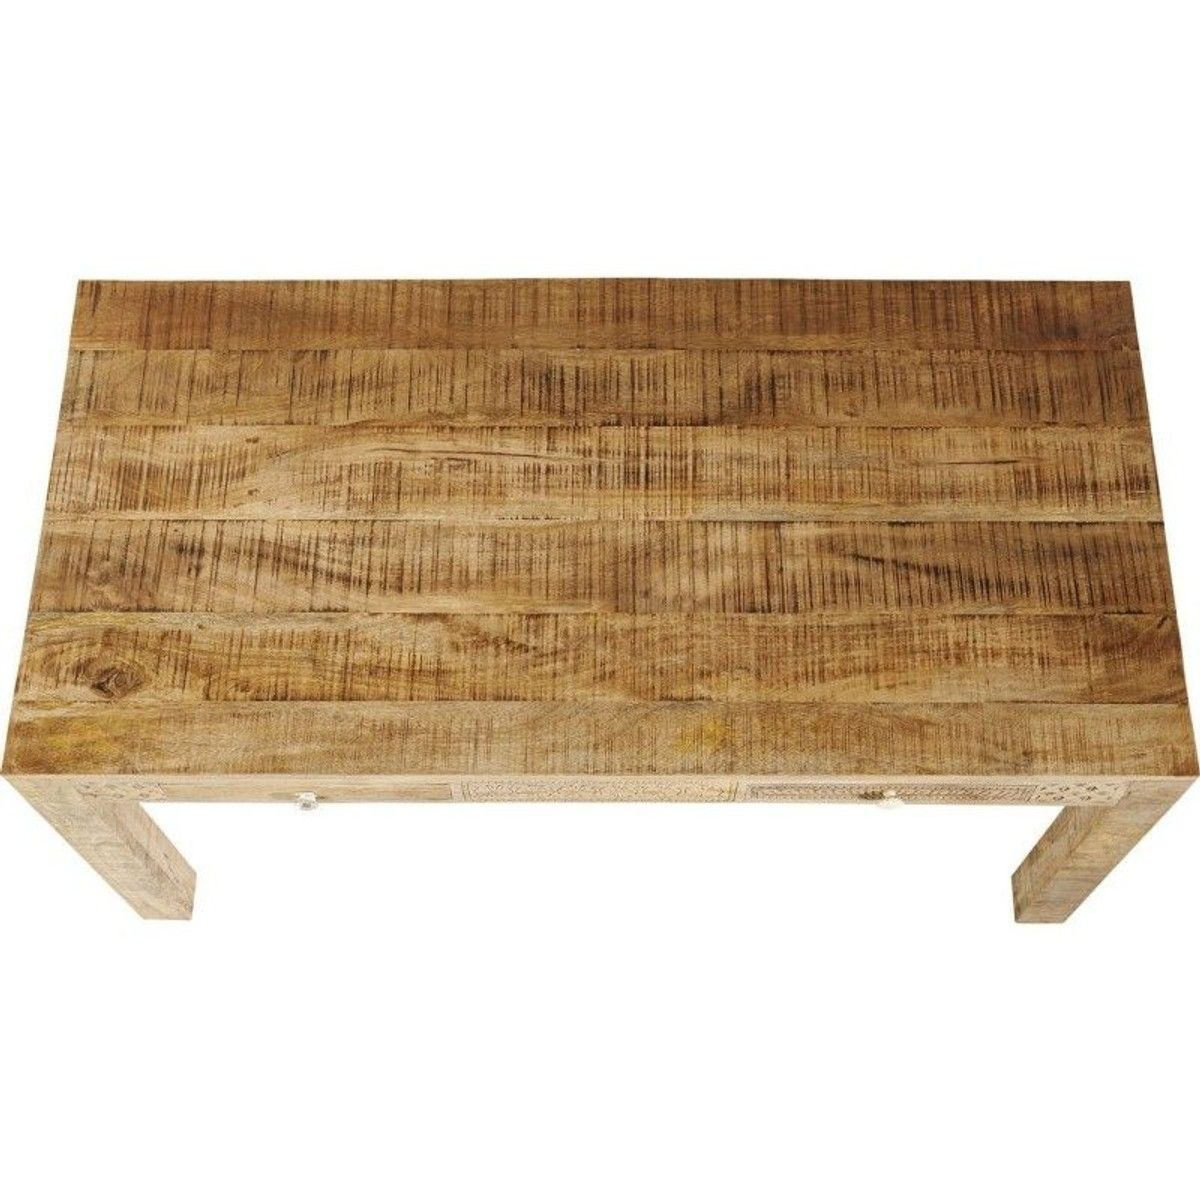 Table Puro Plain 160x80cm Taille 6 Pers Bougeoirs Bois